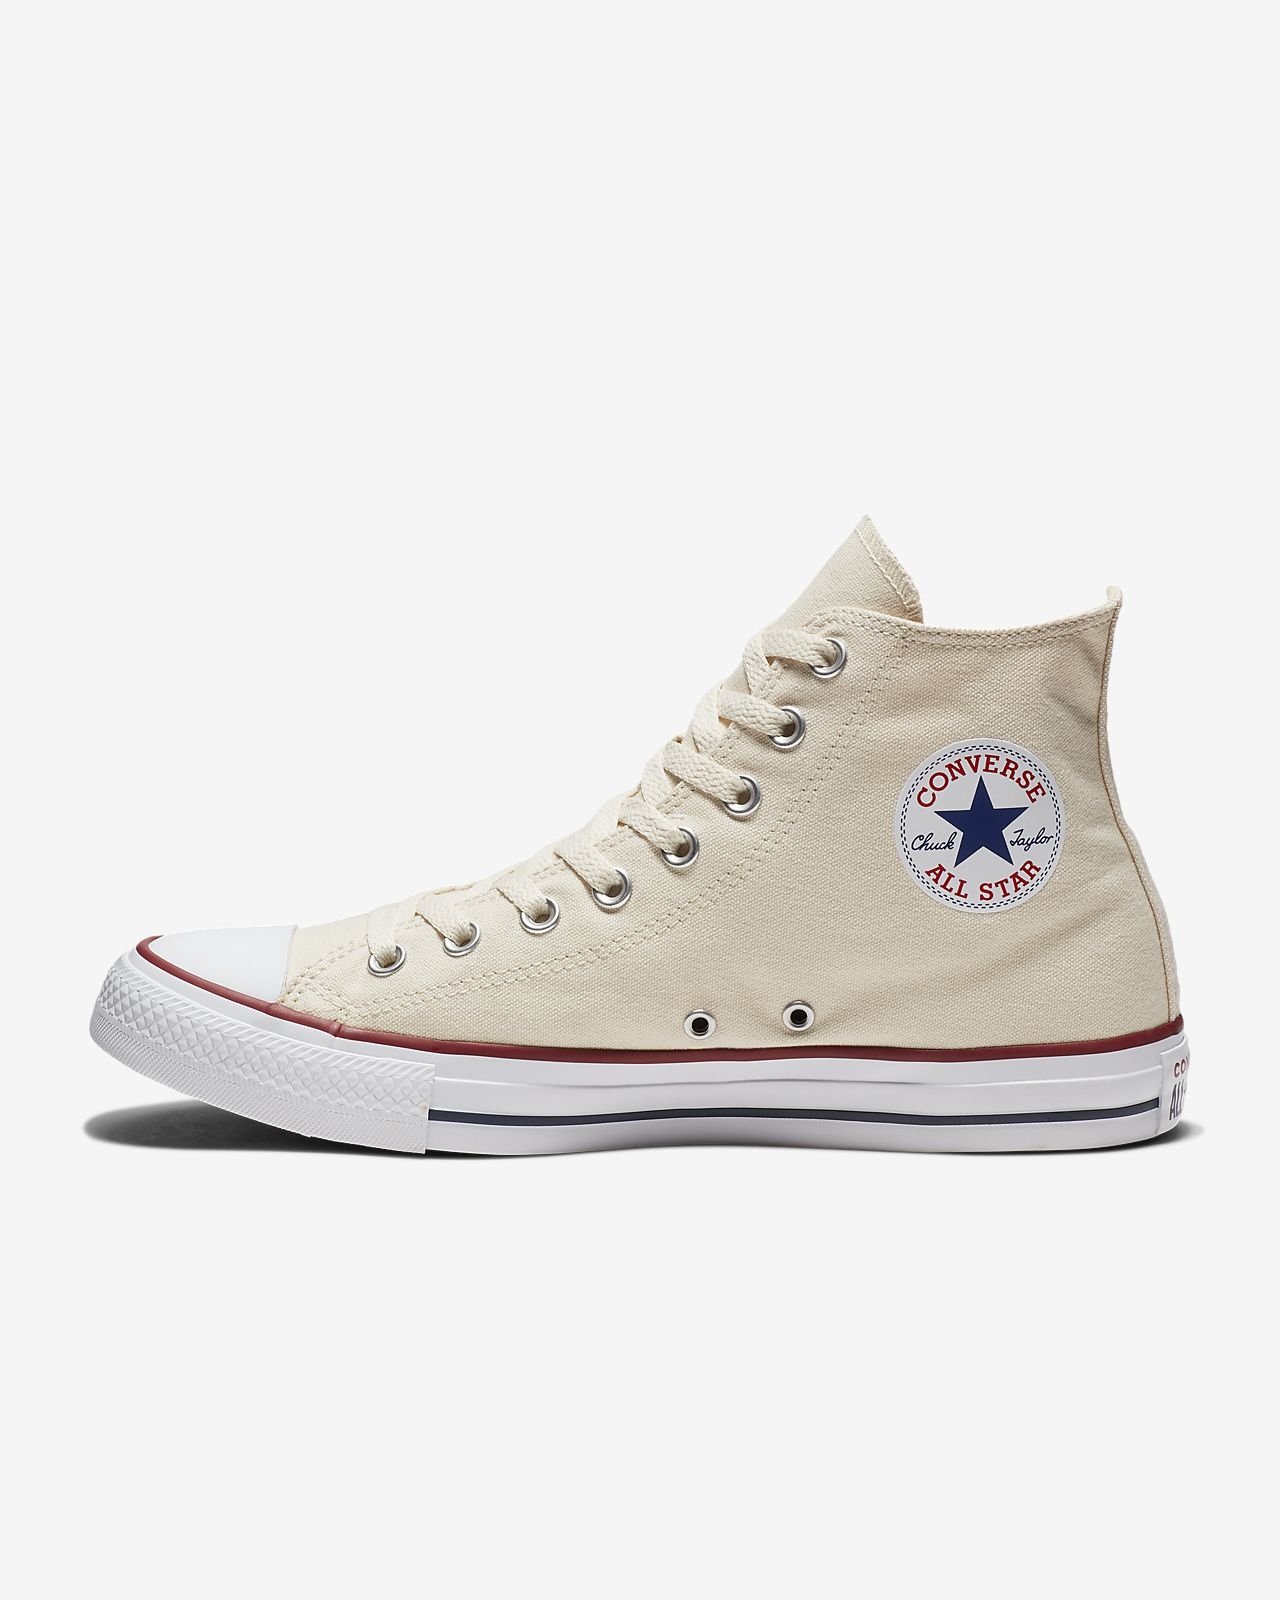 Converse Chuck Taylor All Star Core Unisex High Top Unisex Shoe